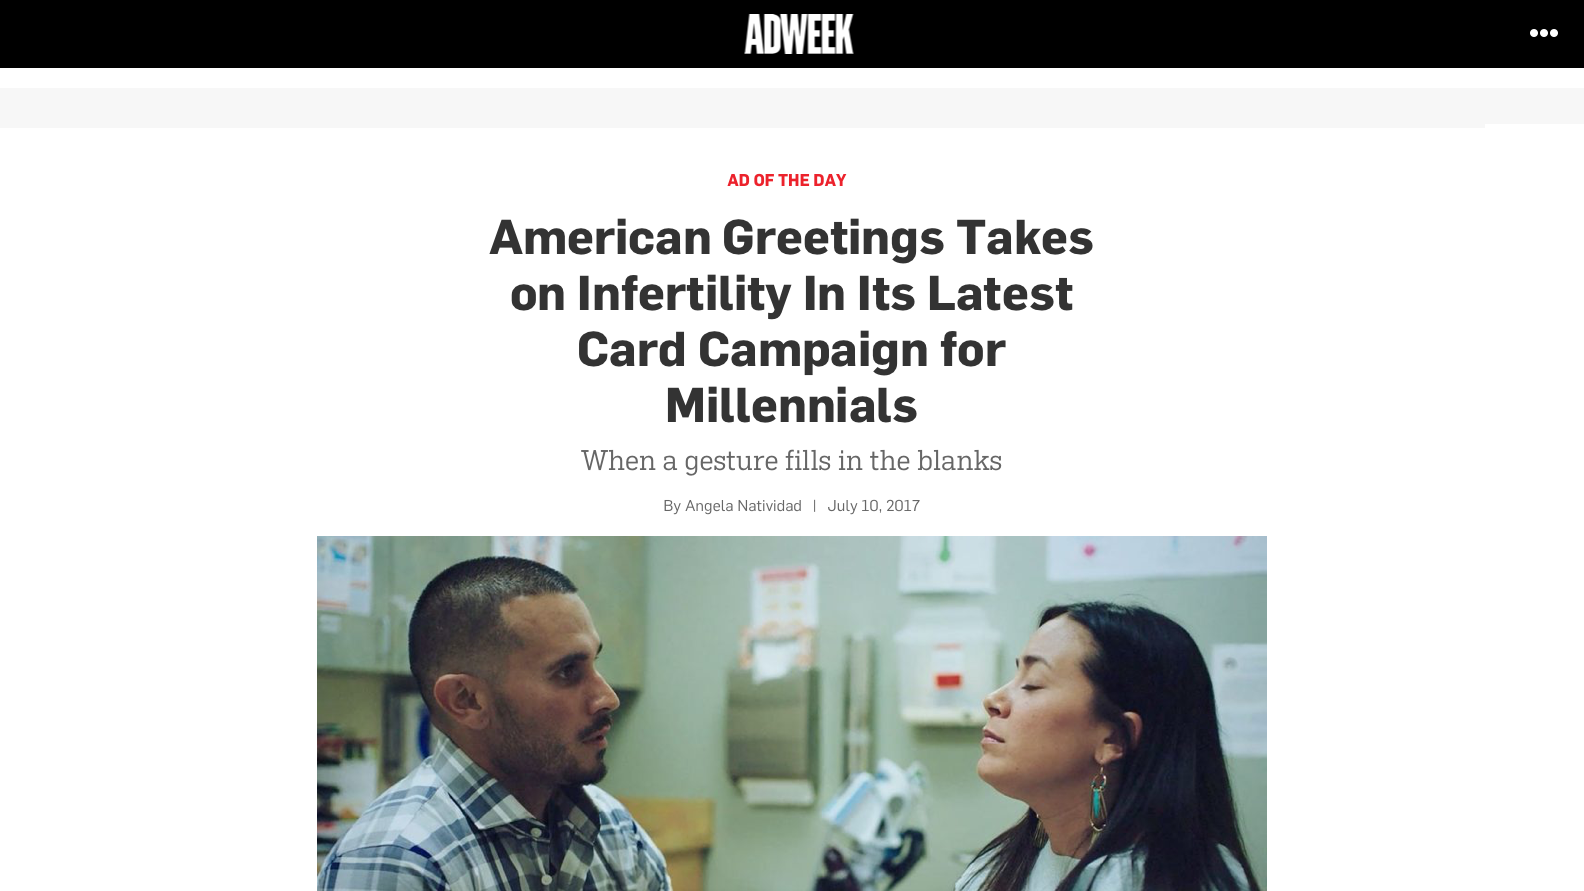 American Greetings Takes on Infertility In Its Latest Card Campaign for Millennials – Adweek.png